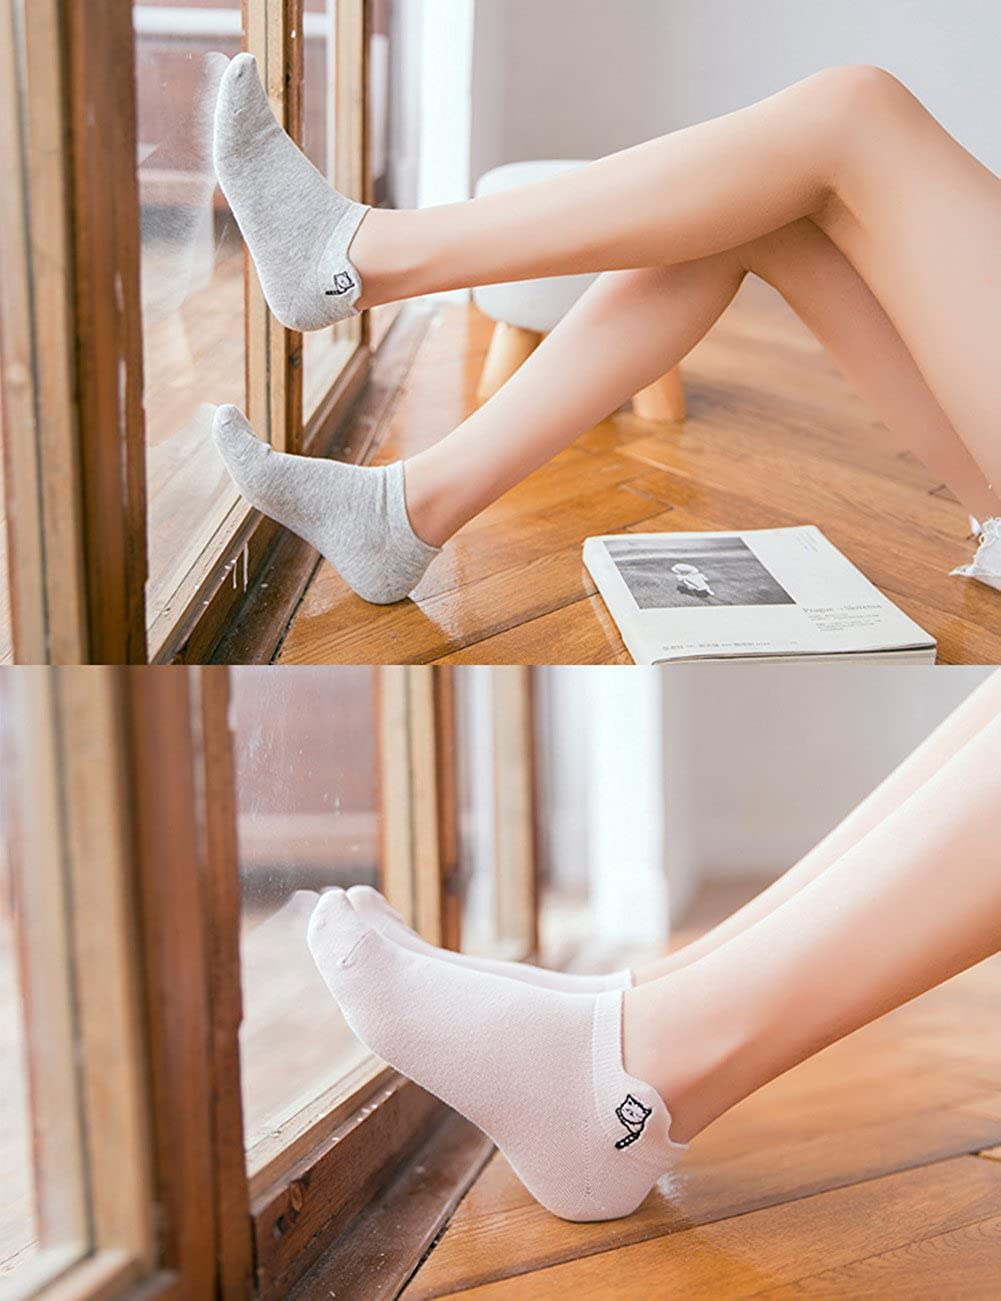 Lantina Women Short Sneakers Socks Low Cut No Show Cotton Invisible Sock Boat Line 5 Pairs